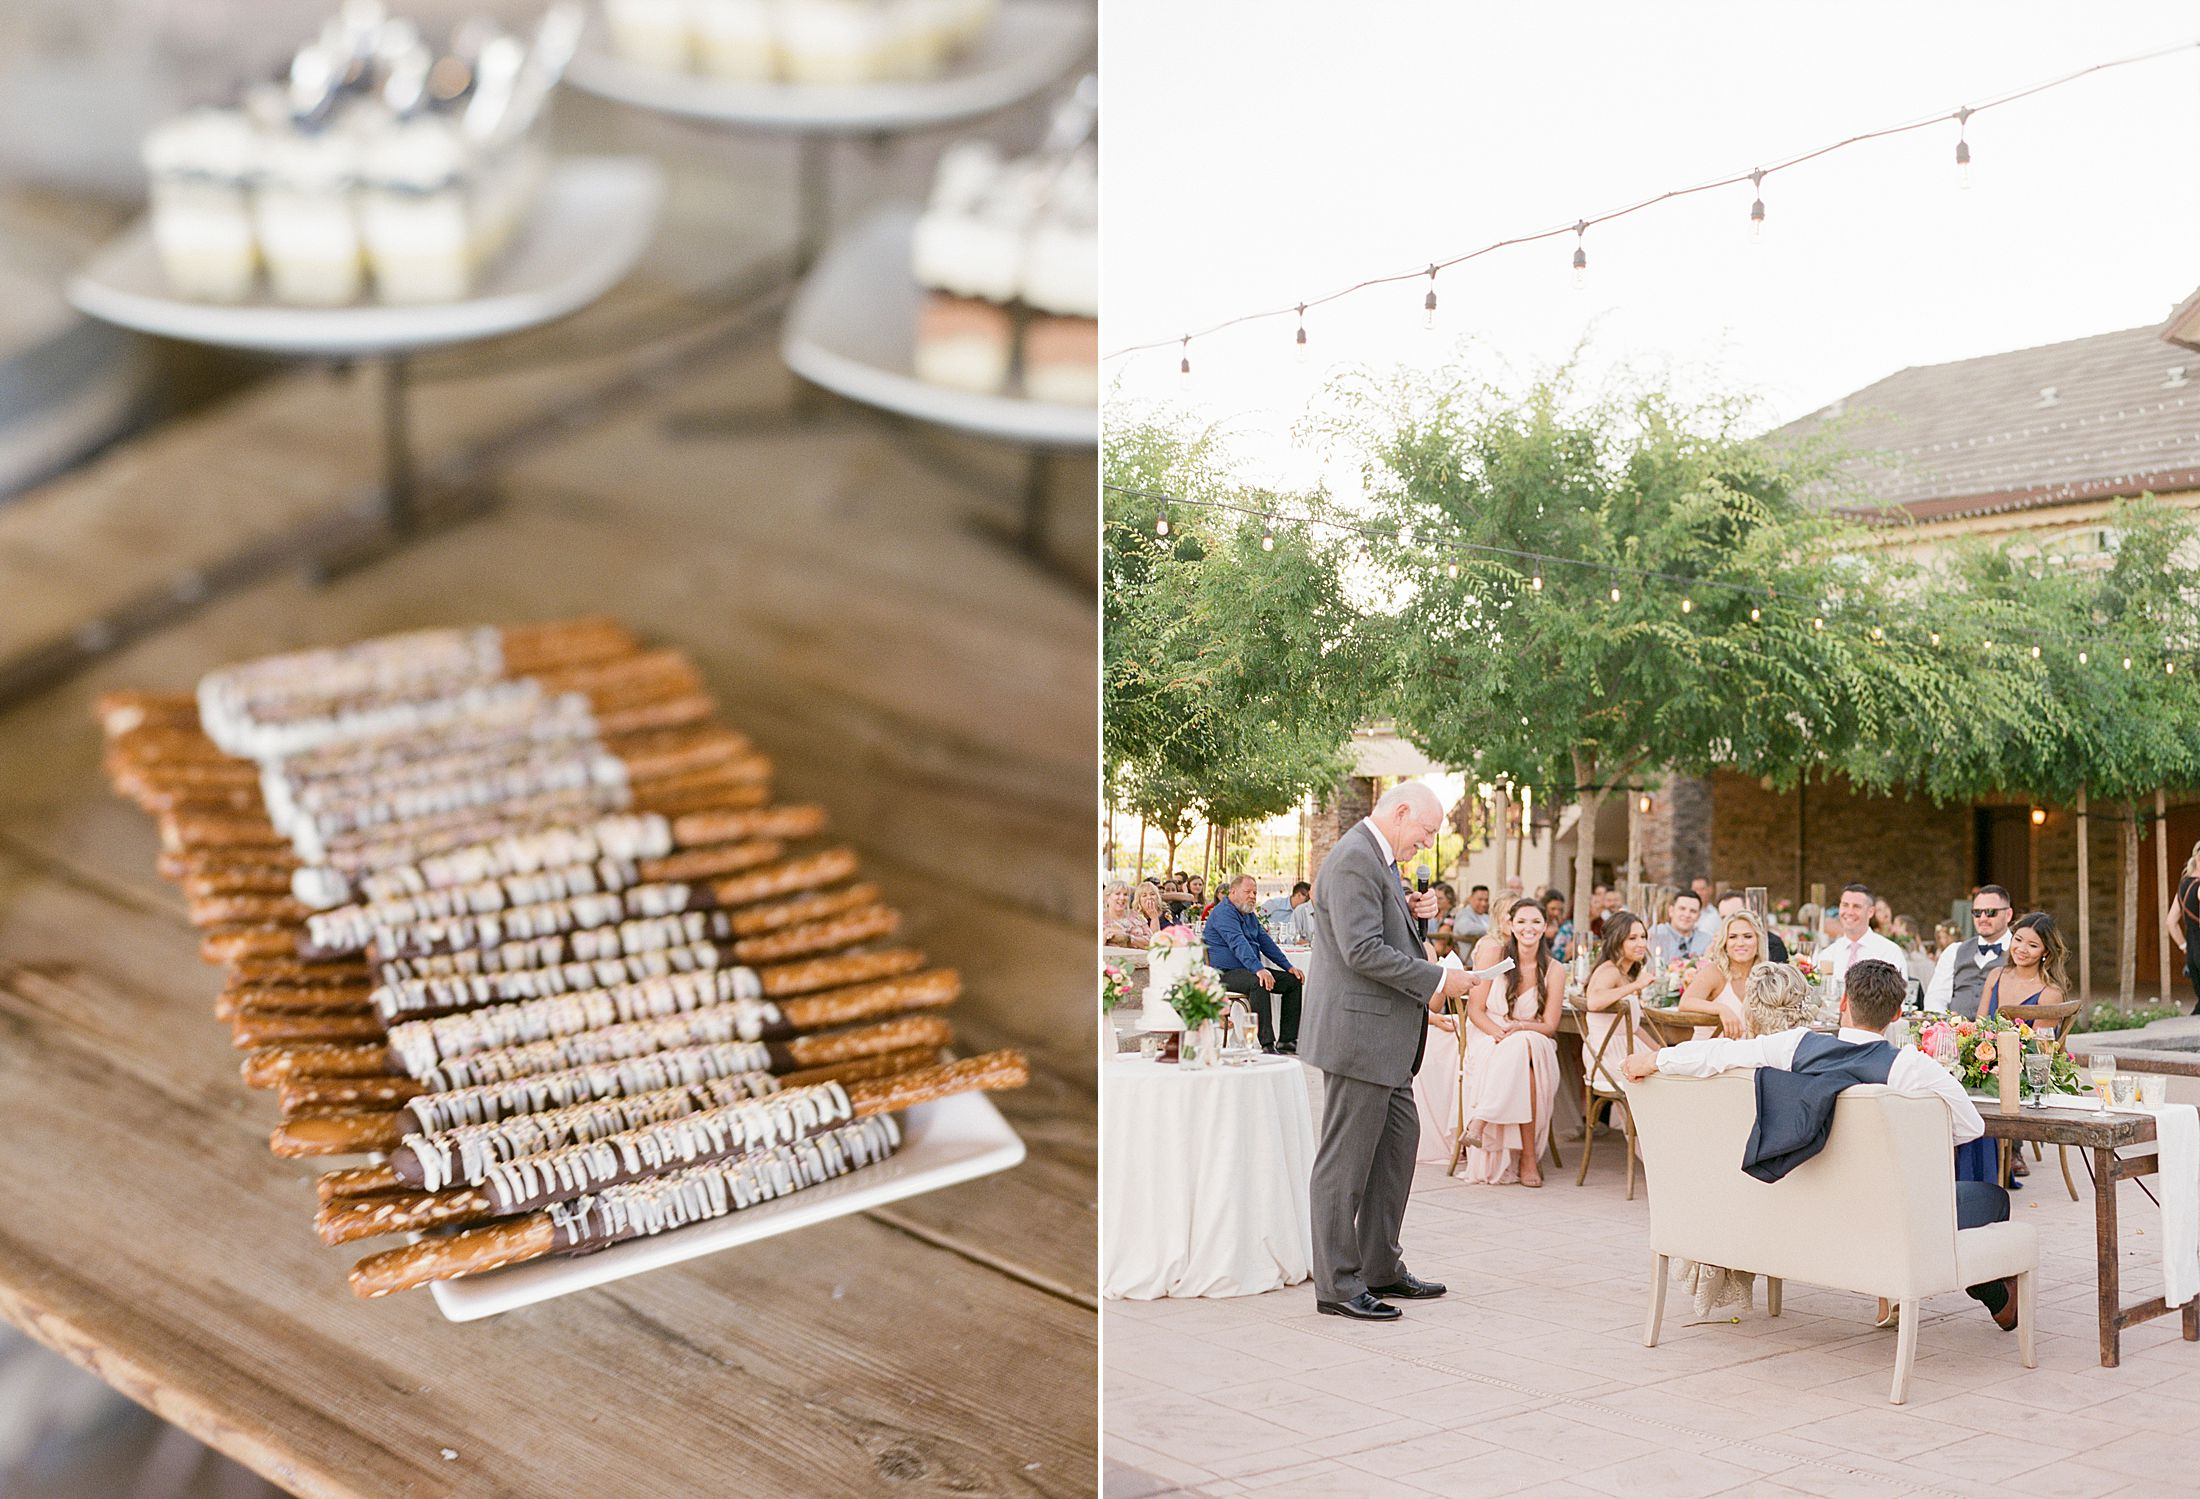 Wolfe Heights Wedding - Bri and Dylan - Jenn Robirds Events - Carats and Cake Real Wedding - Ashley Baumgartner - Sacramento Wedding Photography_0061.jpg